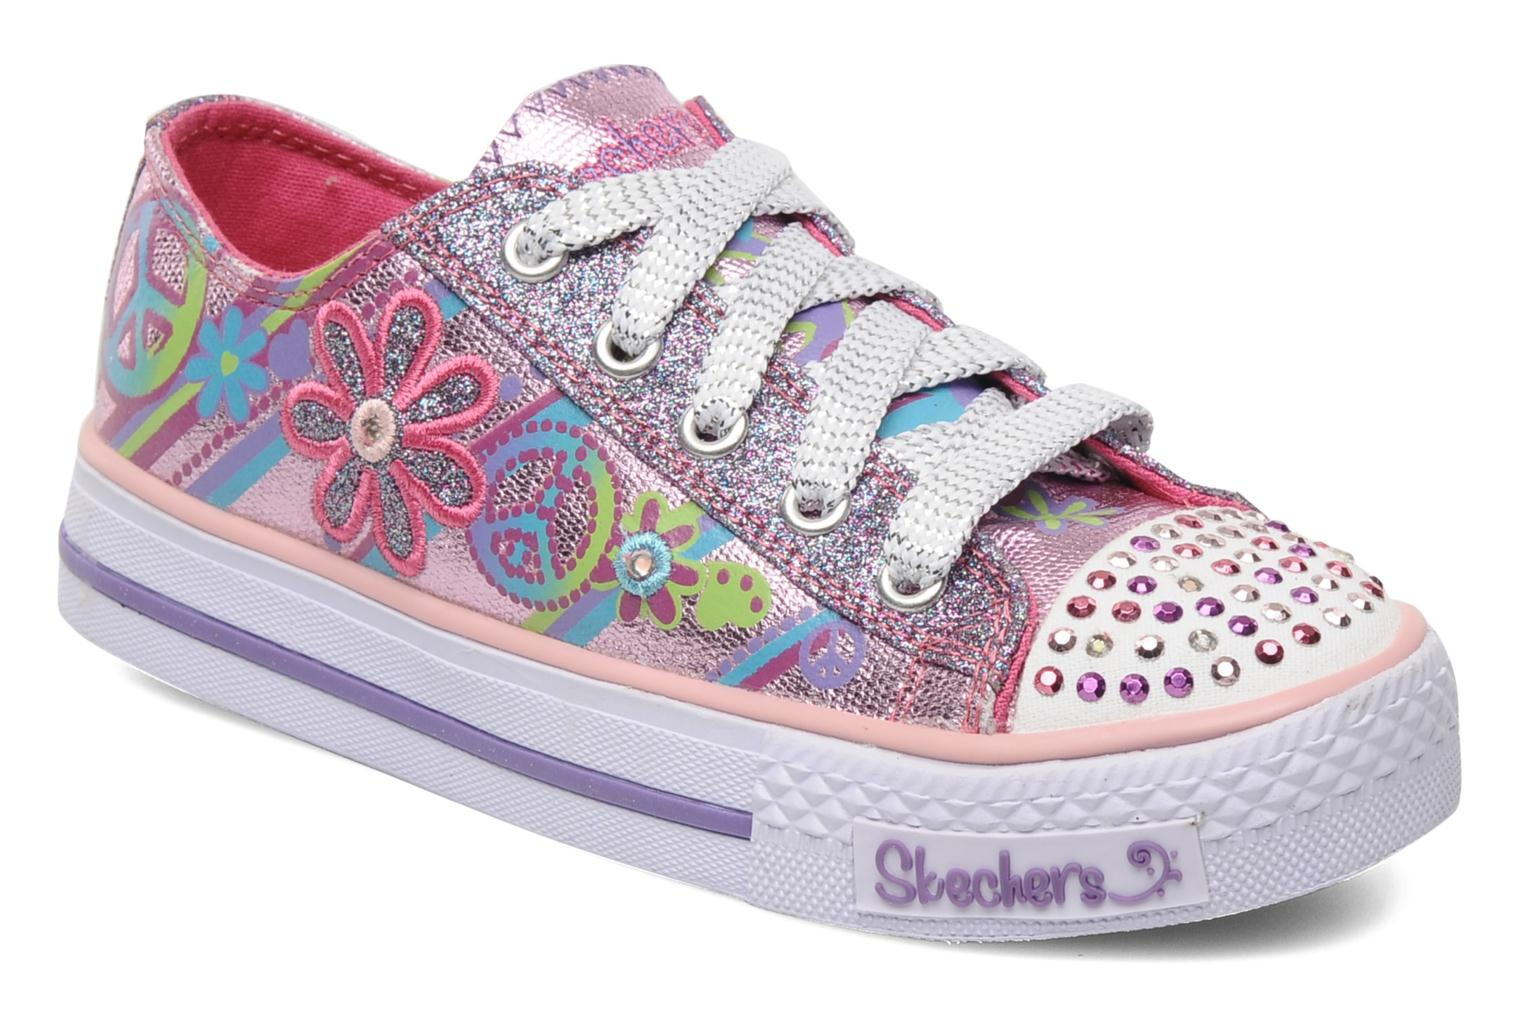 92a87b46b6a skechers clignote sale - OFF41% Discounts